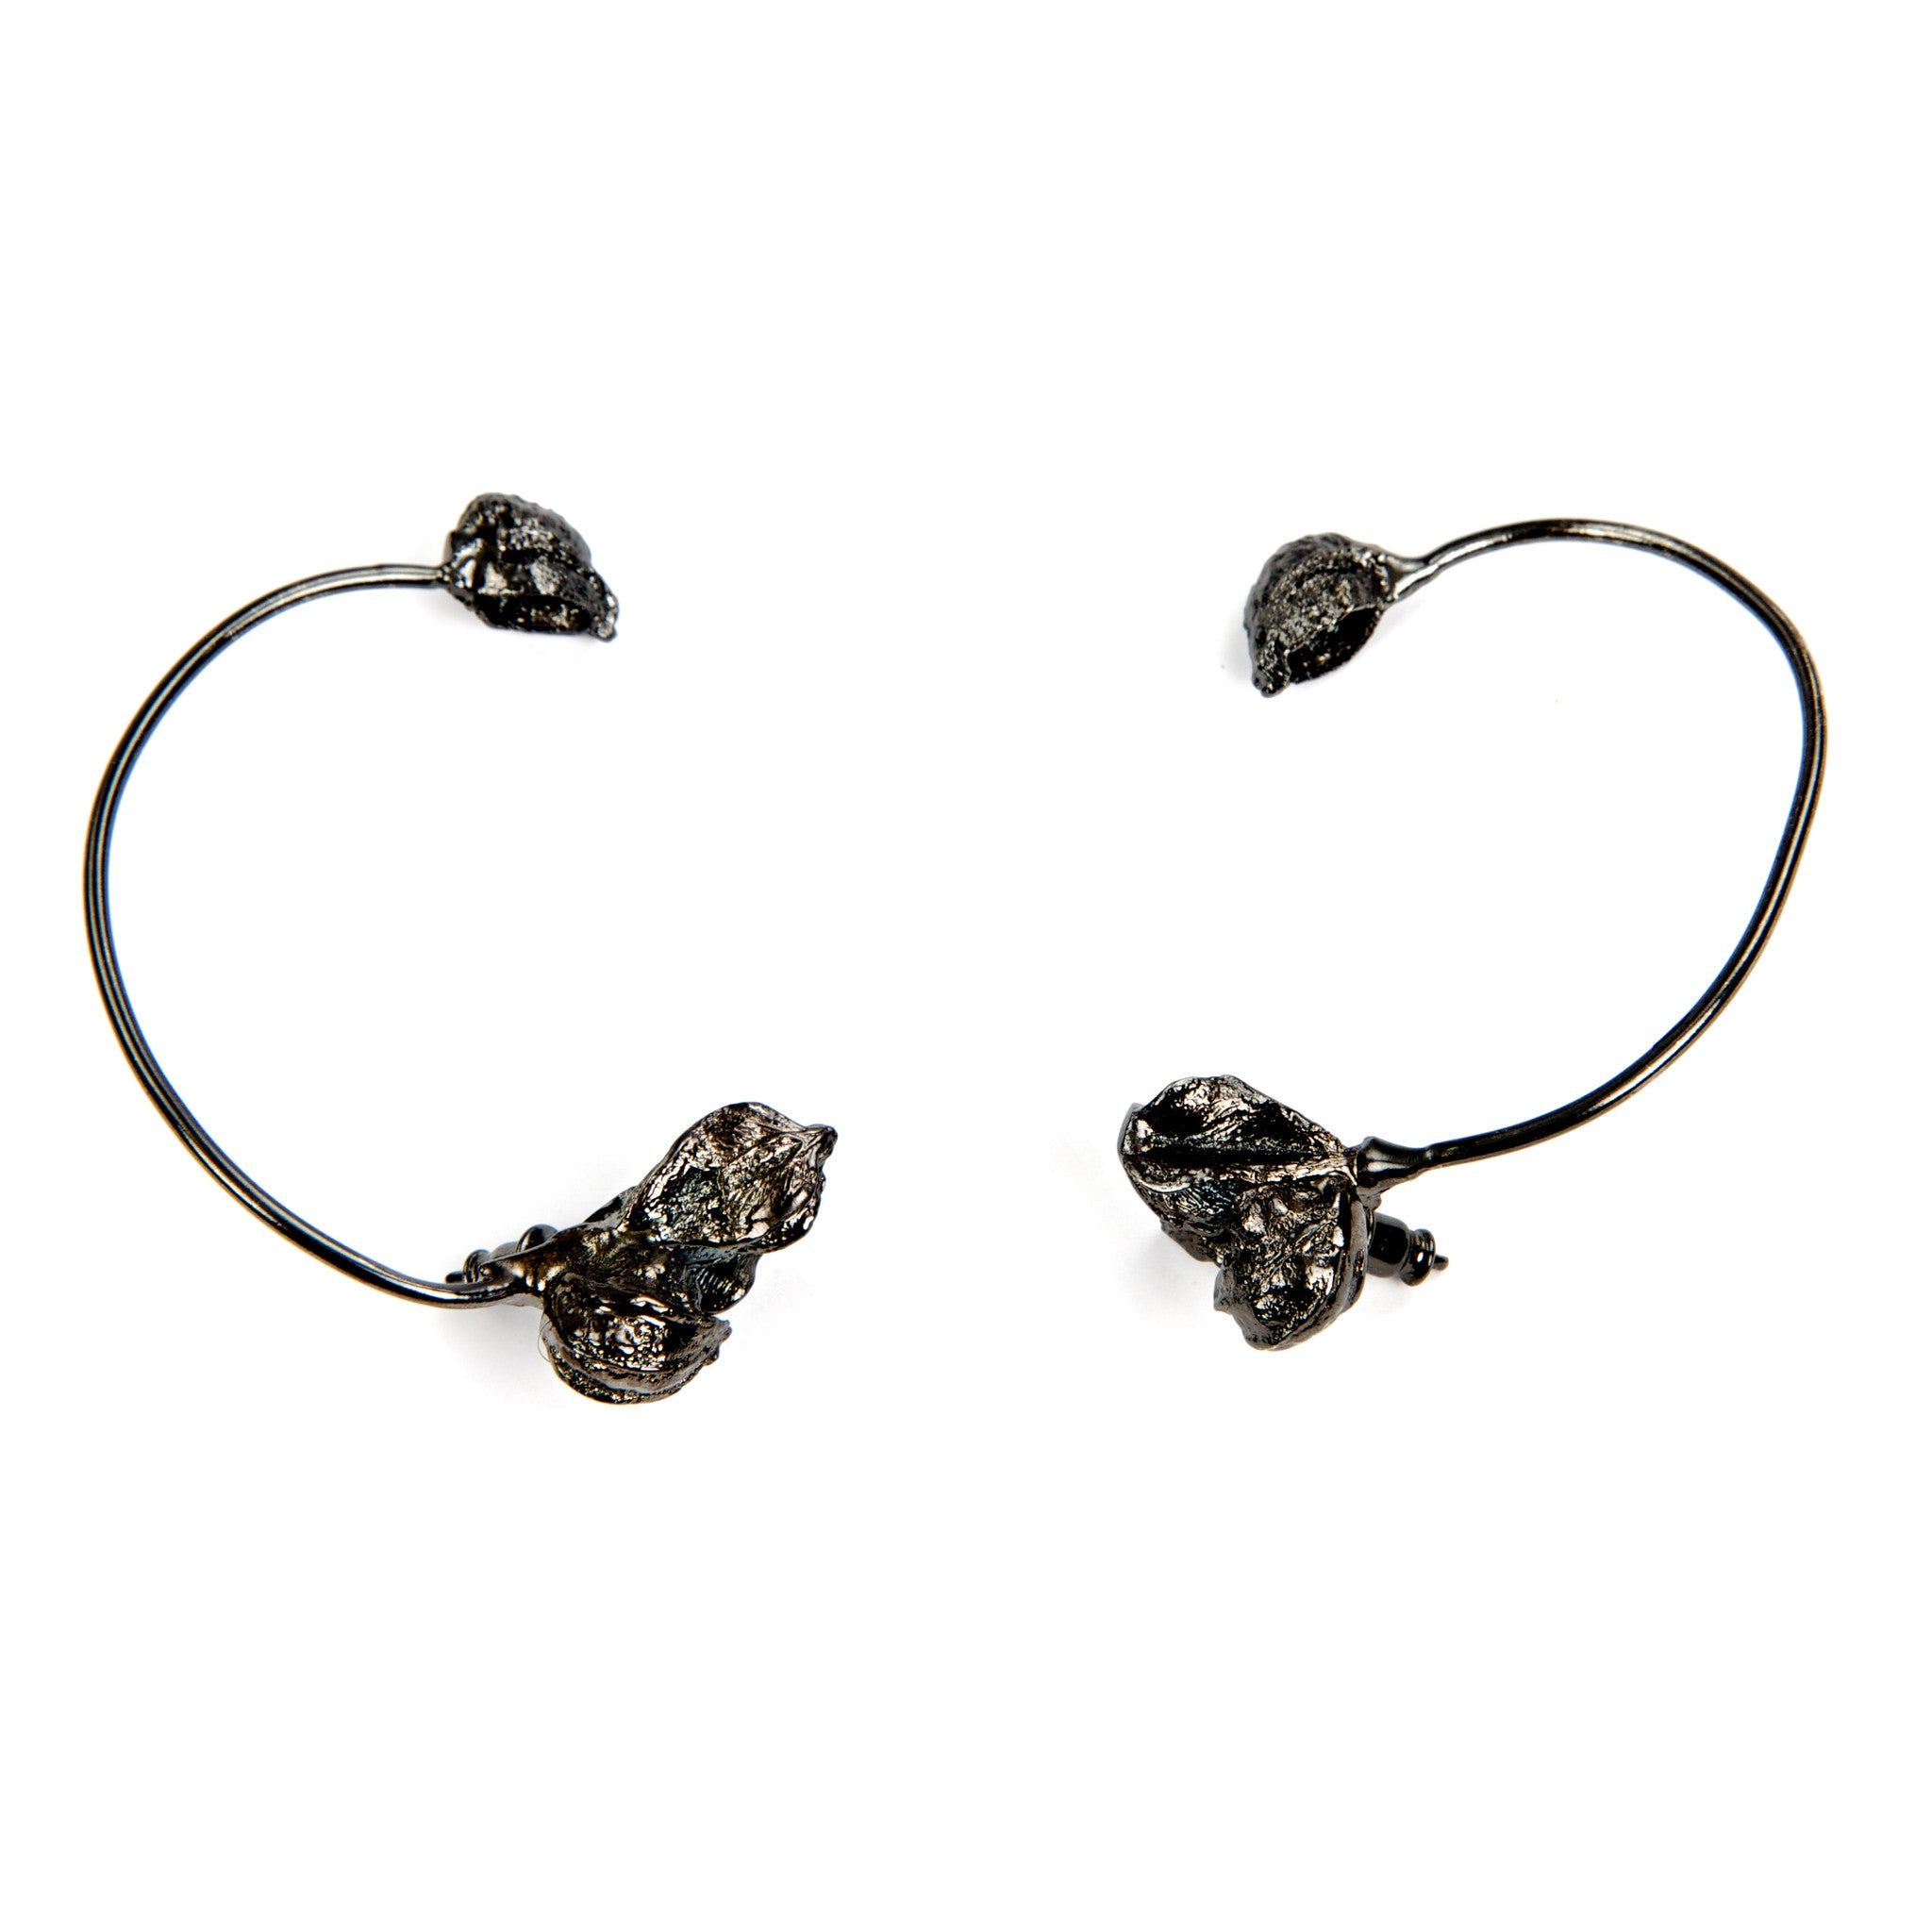 Karpoi Ear Cuffs in Gun Metal Design by Alexandra Koumba